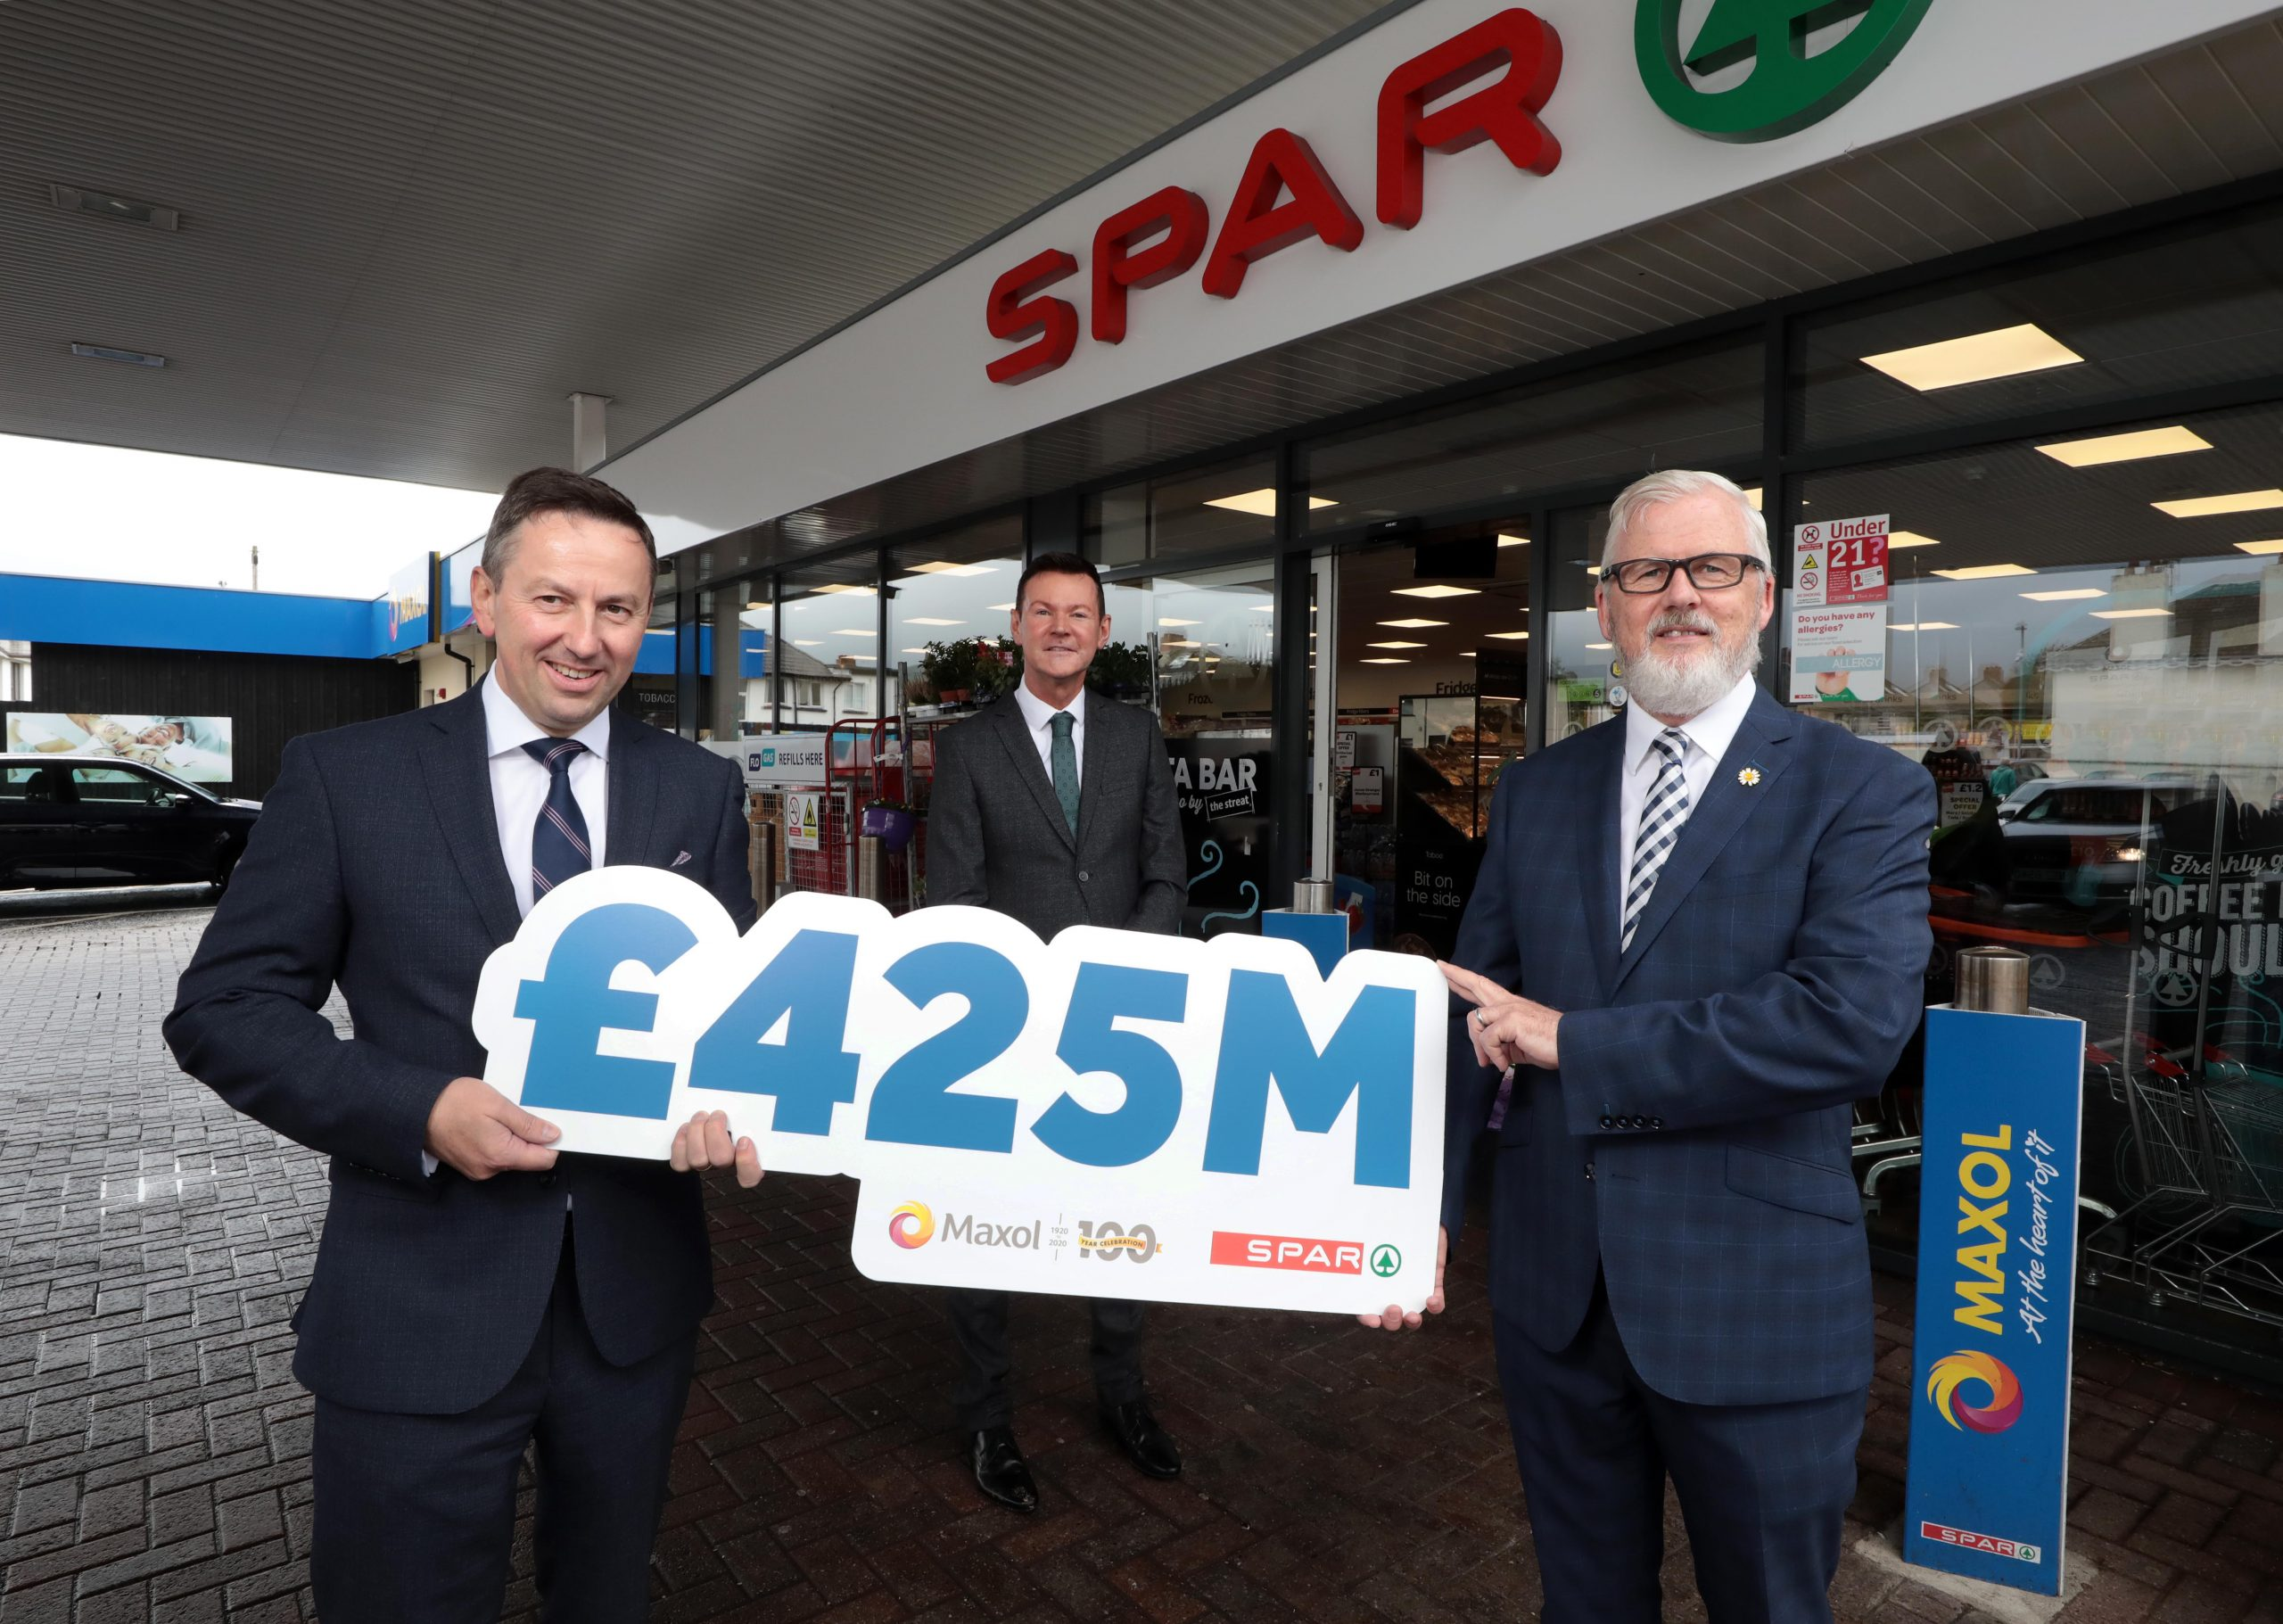 Maxol And Henderson Group renew contract with £425M deal